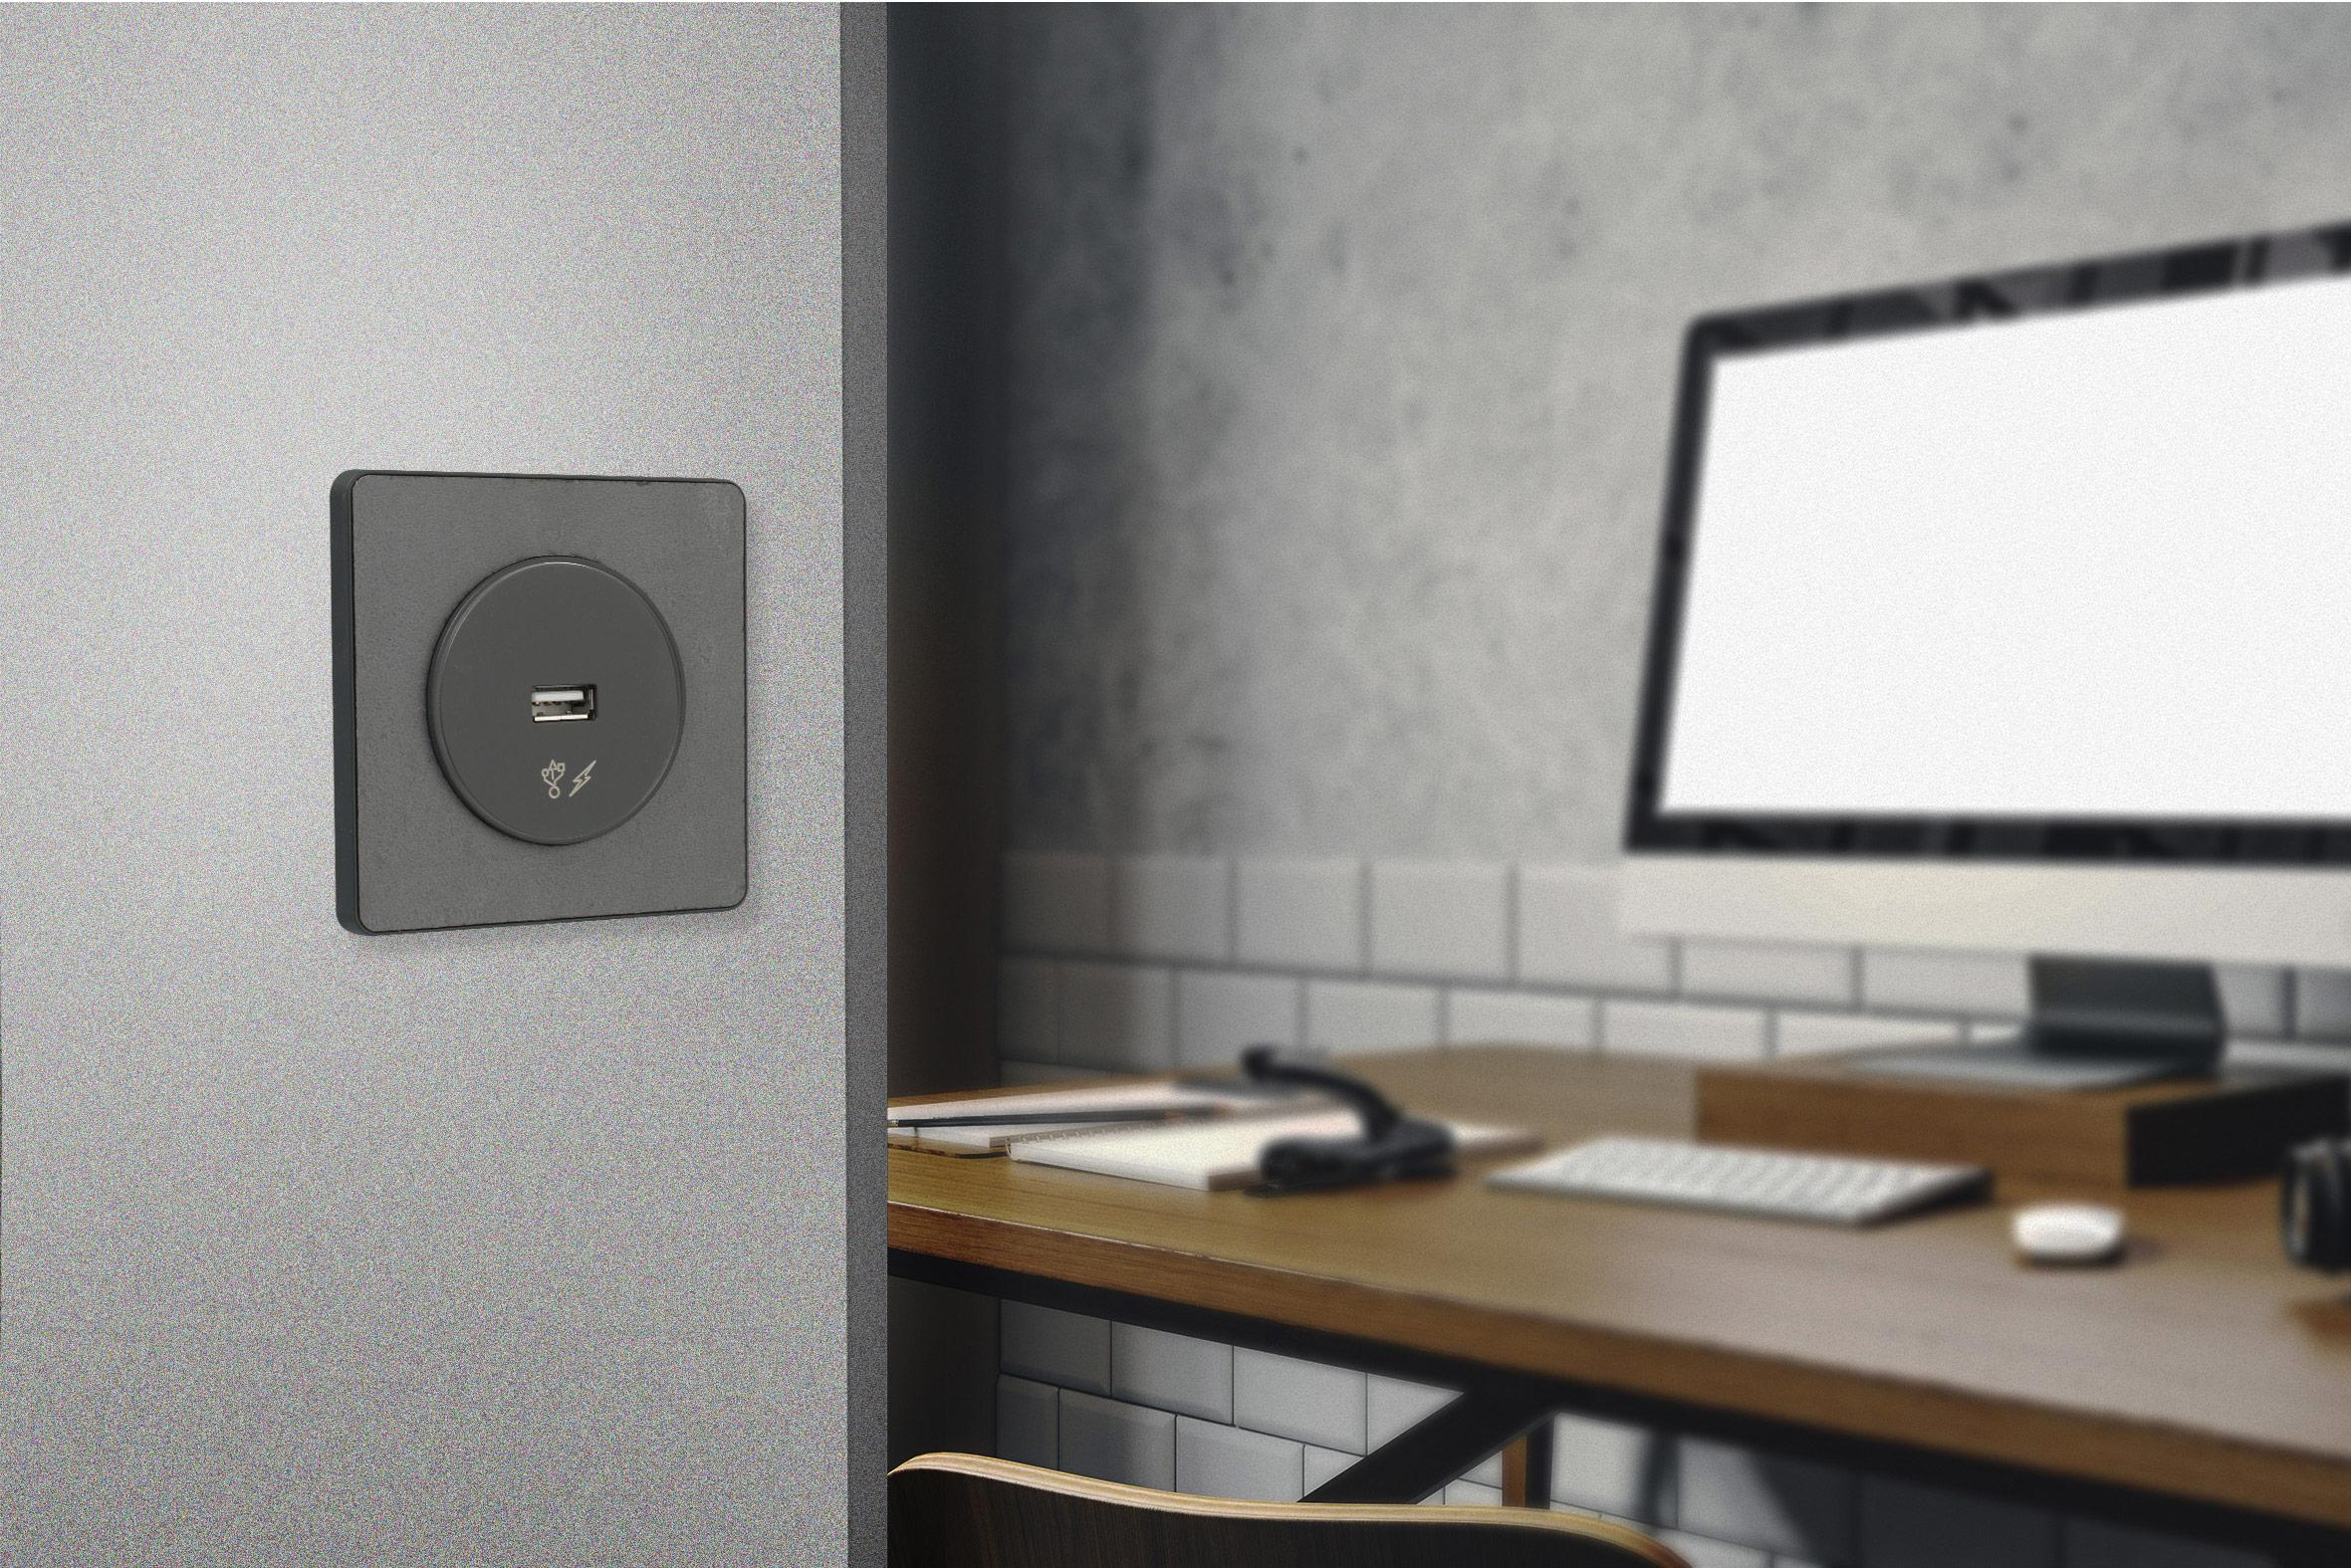 Prise chargeur USB type A Odace anthracite